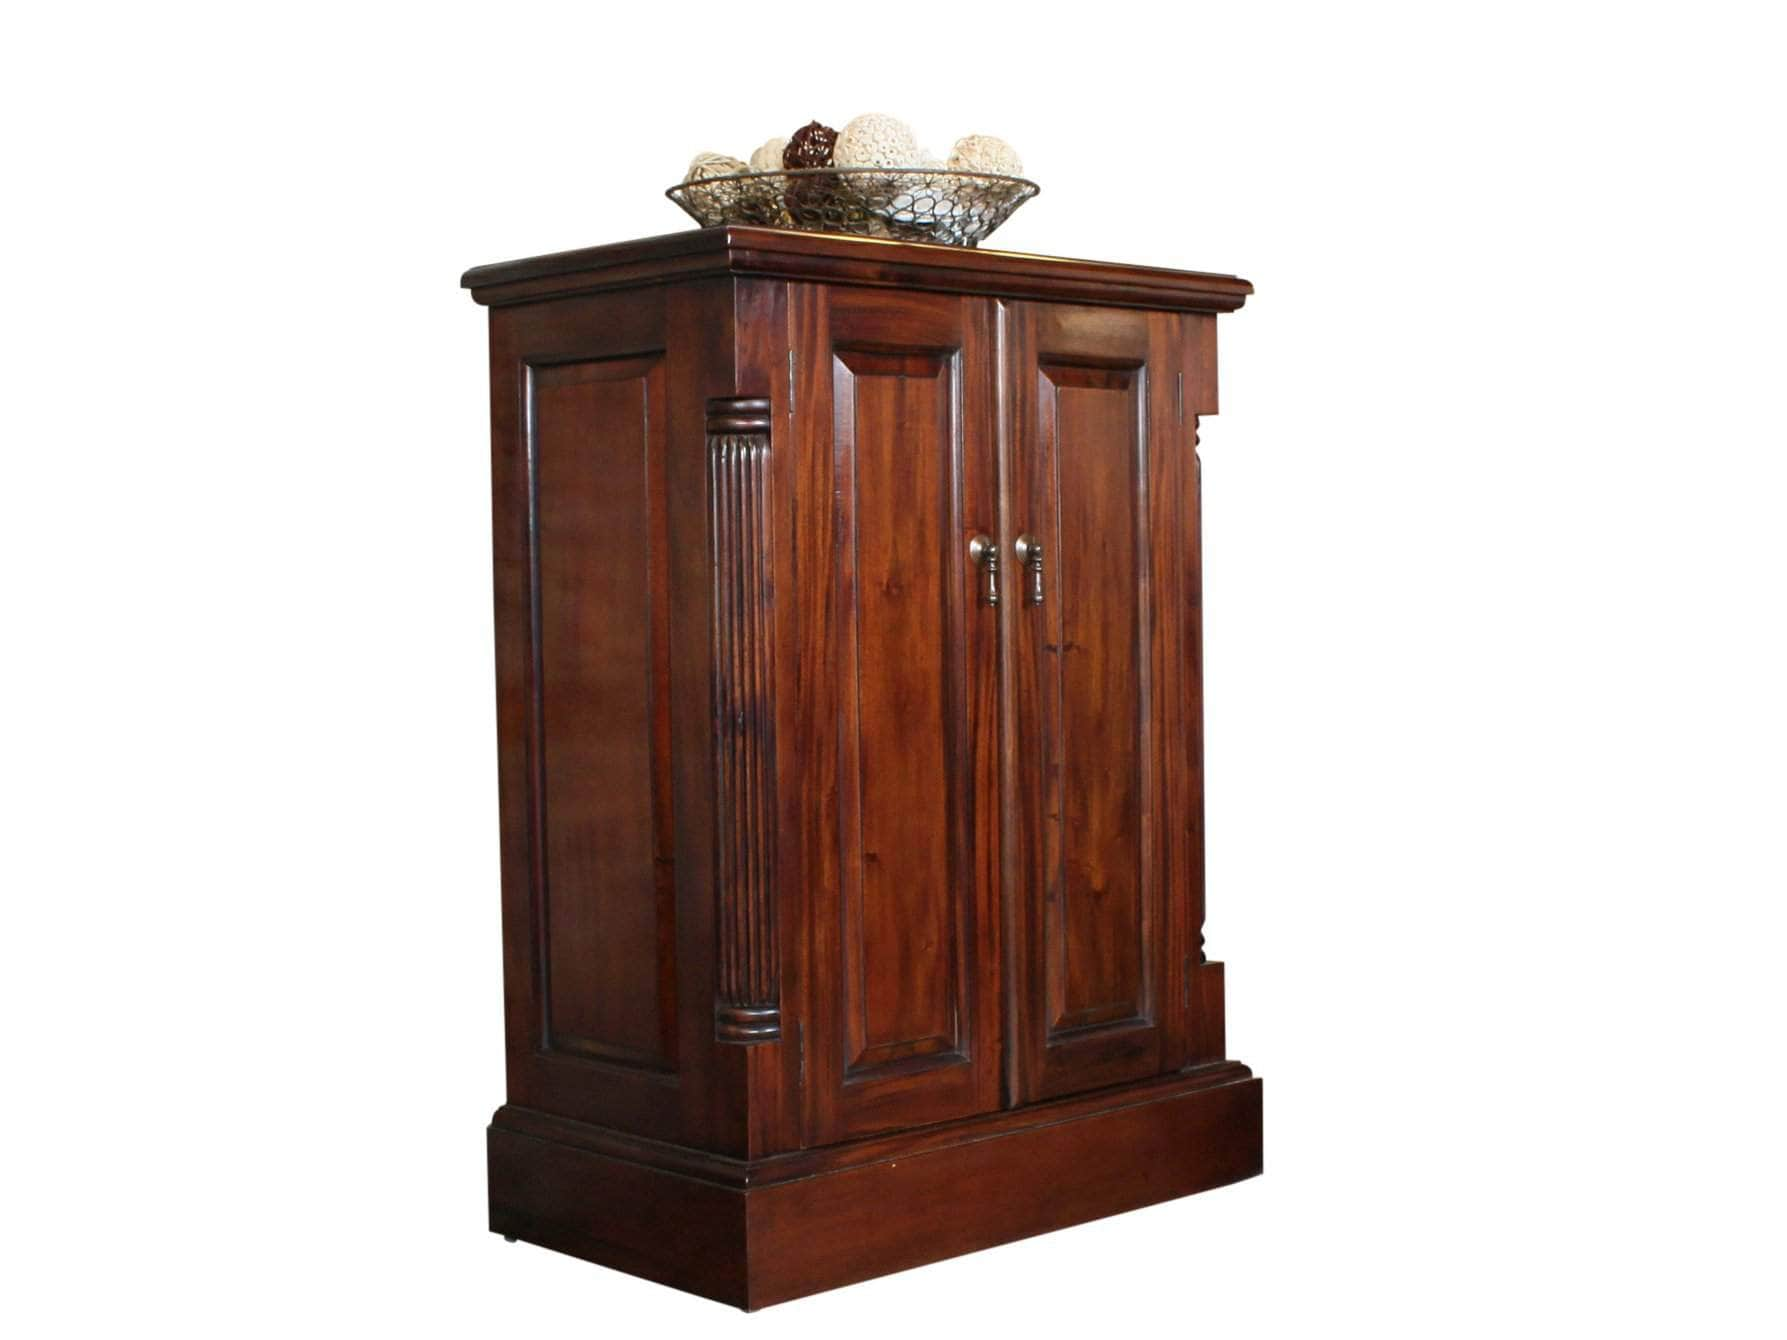 Mahogany hallway shoe cabinet, with space for twelve pairs of shoes